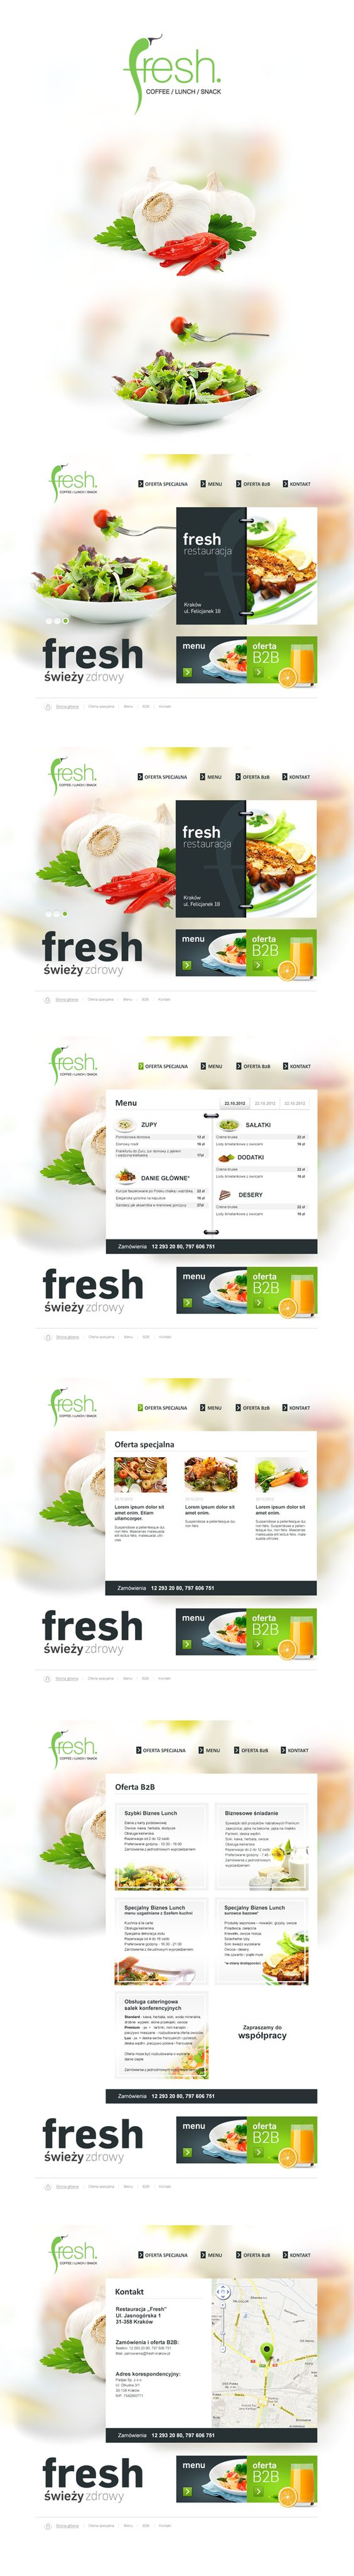 fresh by bart 322 omiej g 281 boli 347 via behance nice design of a menu off fresh by bart322omiej g281boli347 via behance nice design of a menu off a website